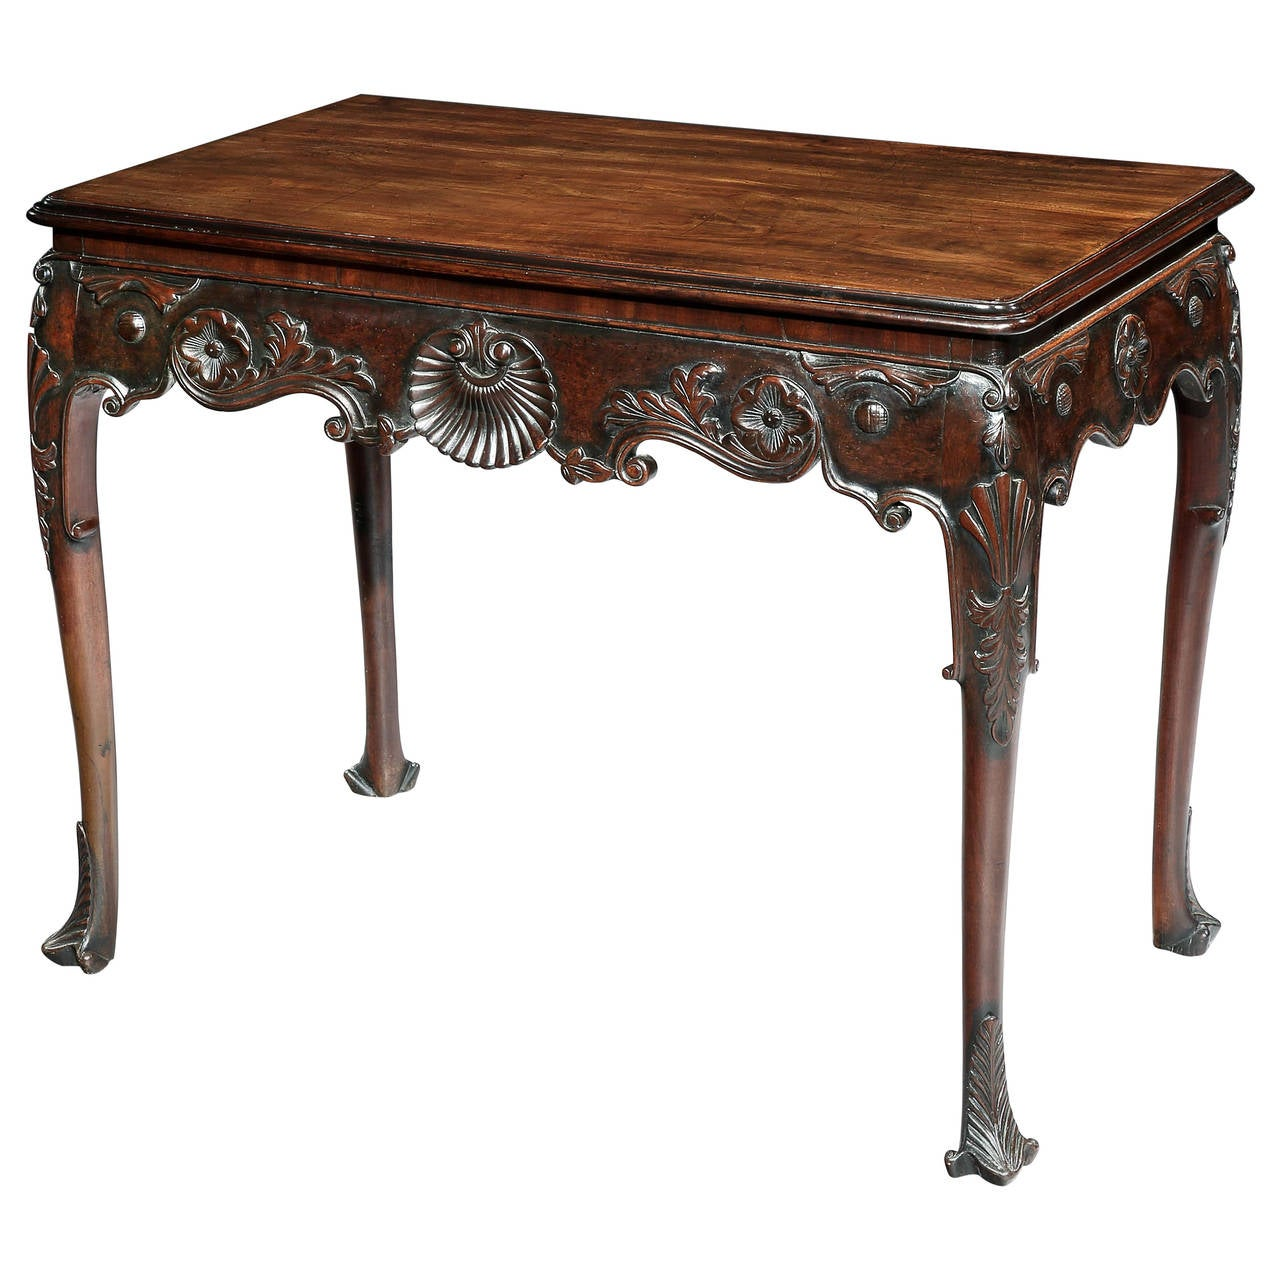 irish george iii mahogany console table for sale at 1stdibs. Black Bedroom Furniture Sets. Home Design Ideas